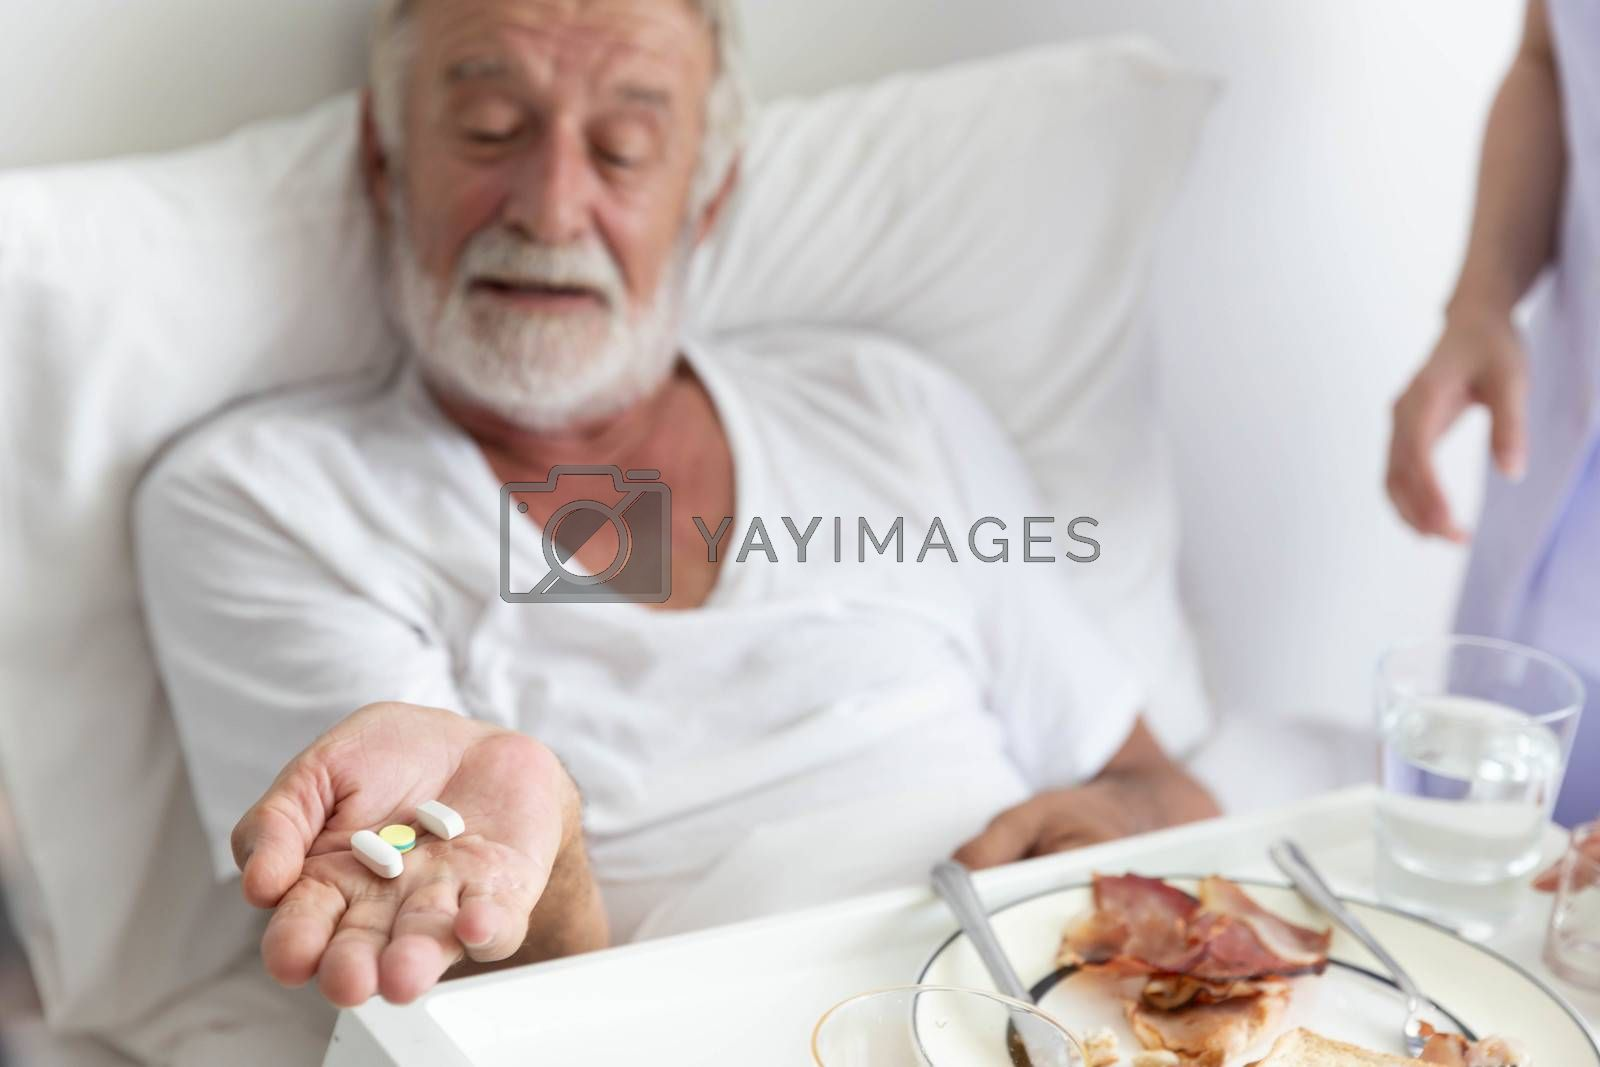 Nurse give medicine pills to elderly senior patient while he is in his bed with breakfast